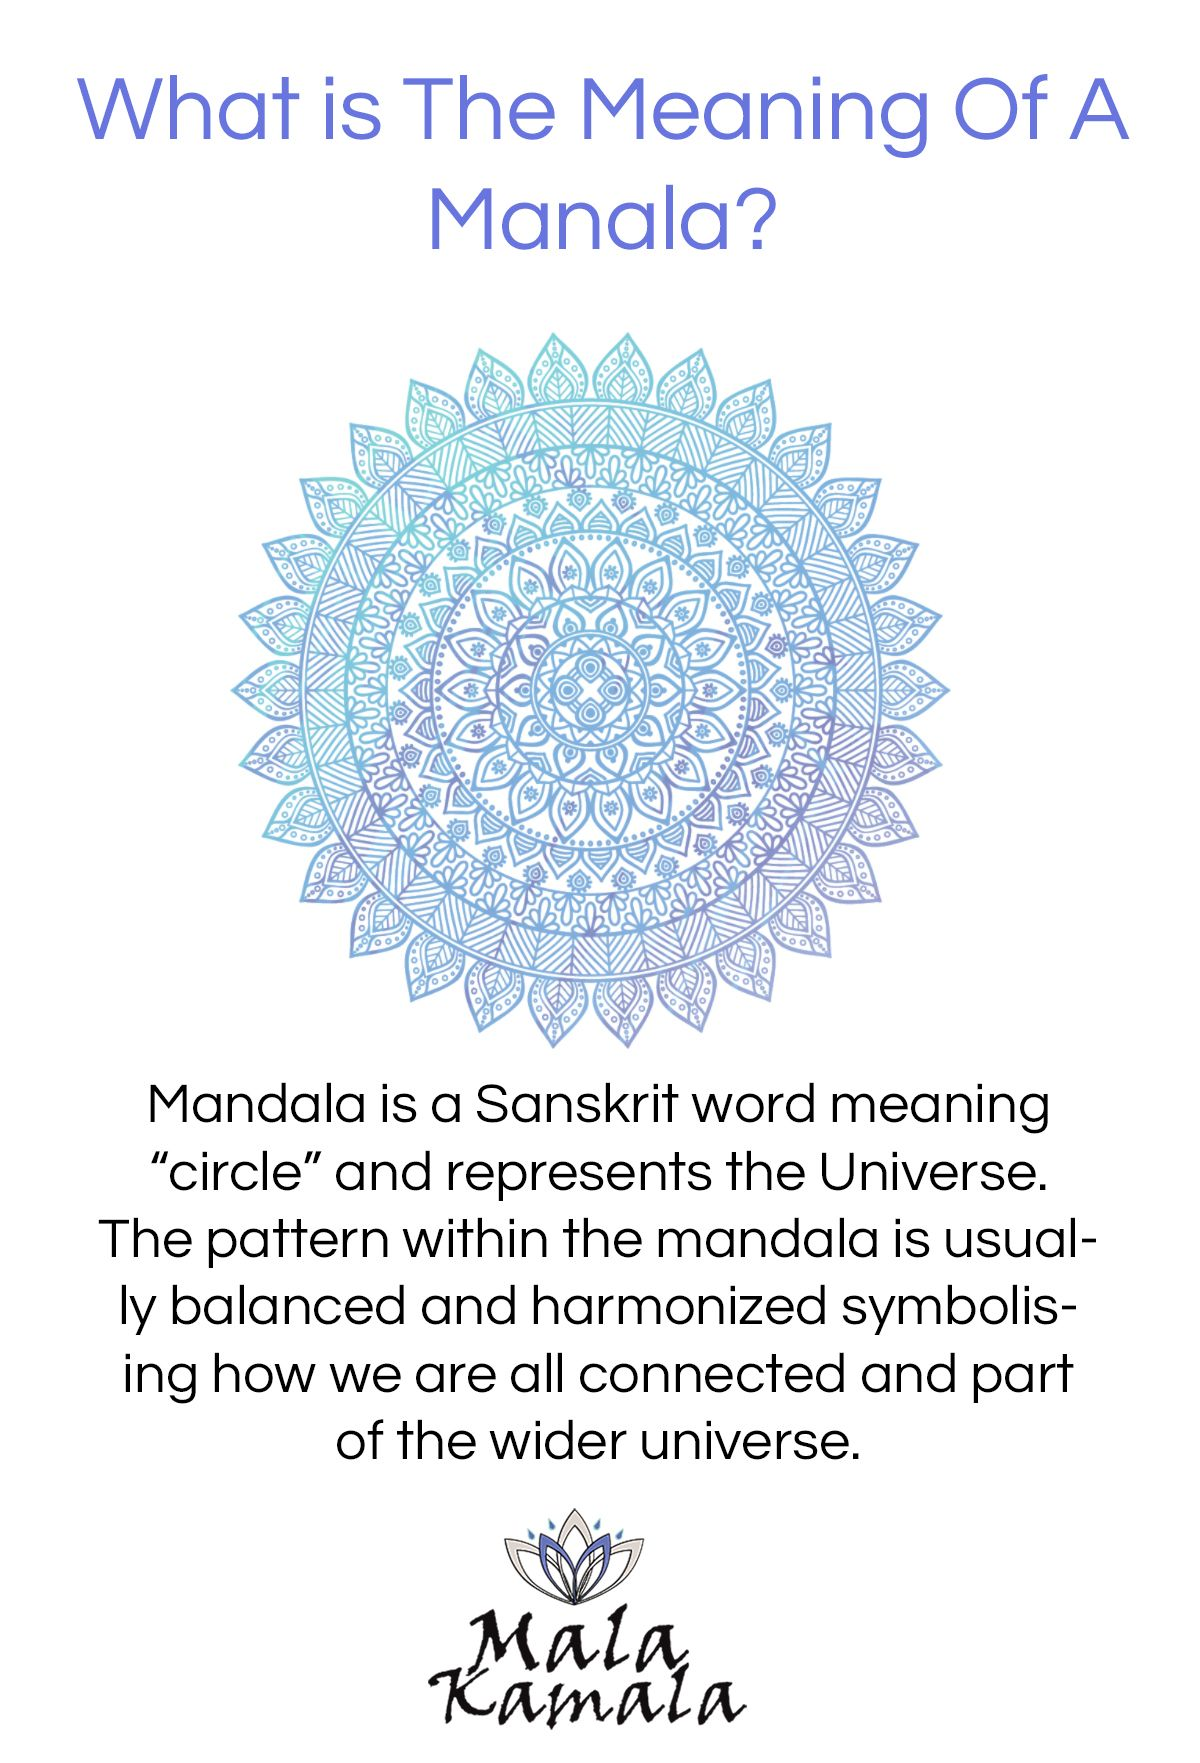 what is the meaning of a mandala? where does a mandala come from